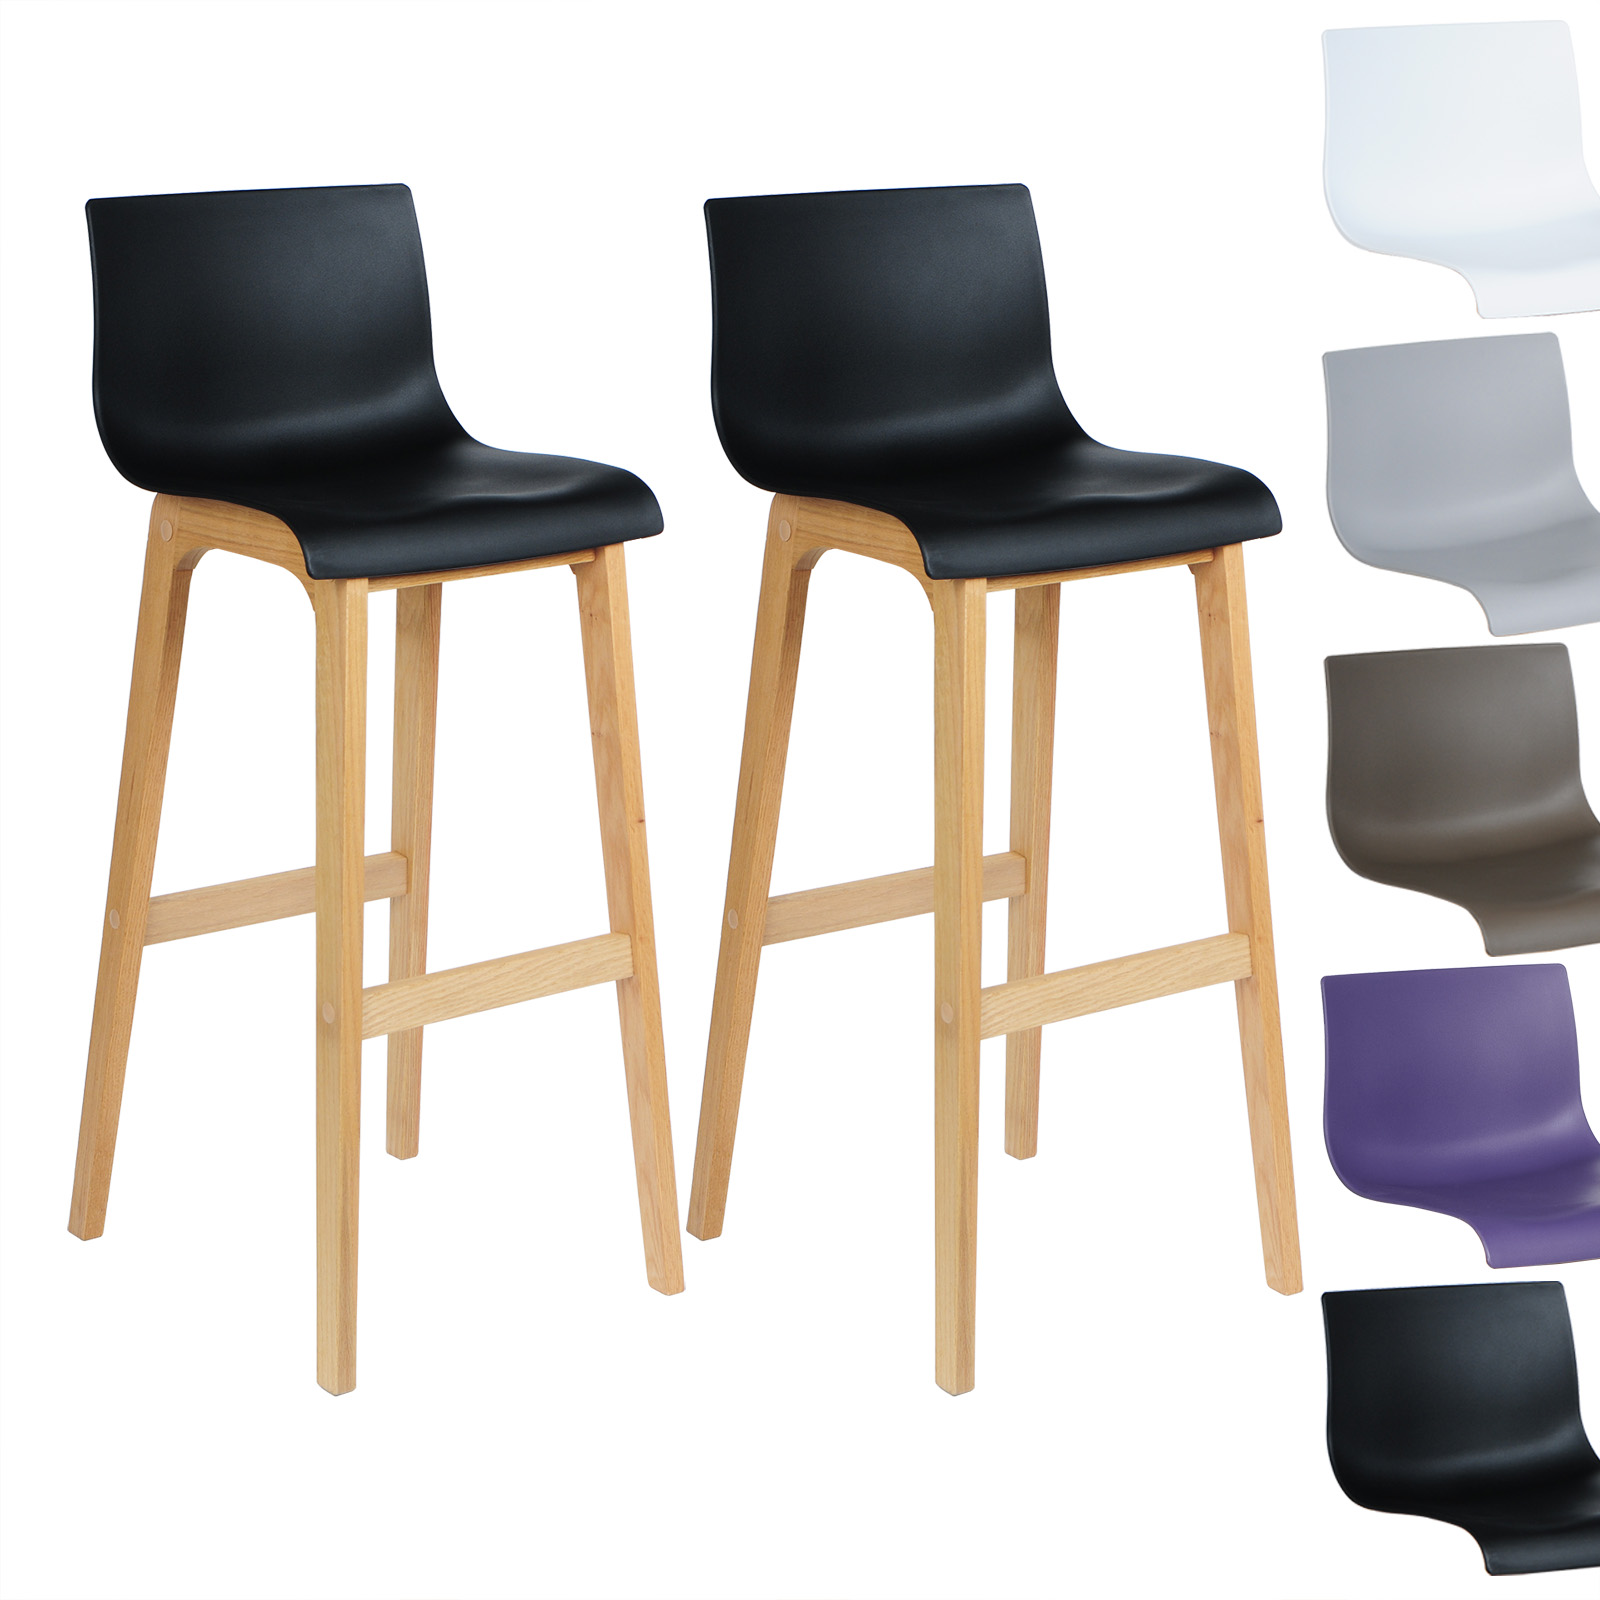 tabouret de bar lot de 2 en plastique chaise en bois avec dossier f090 ebay. Black Bedroom Furniture Sets. Home Design Ideas